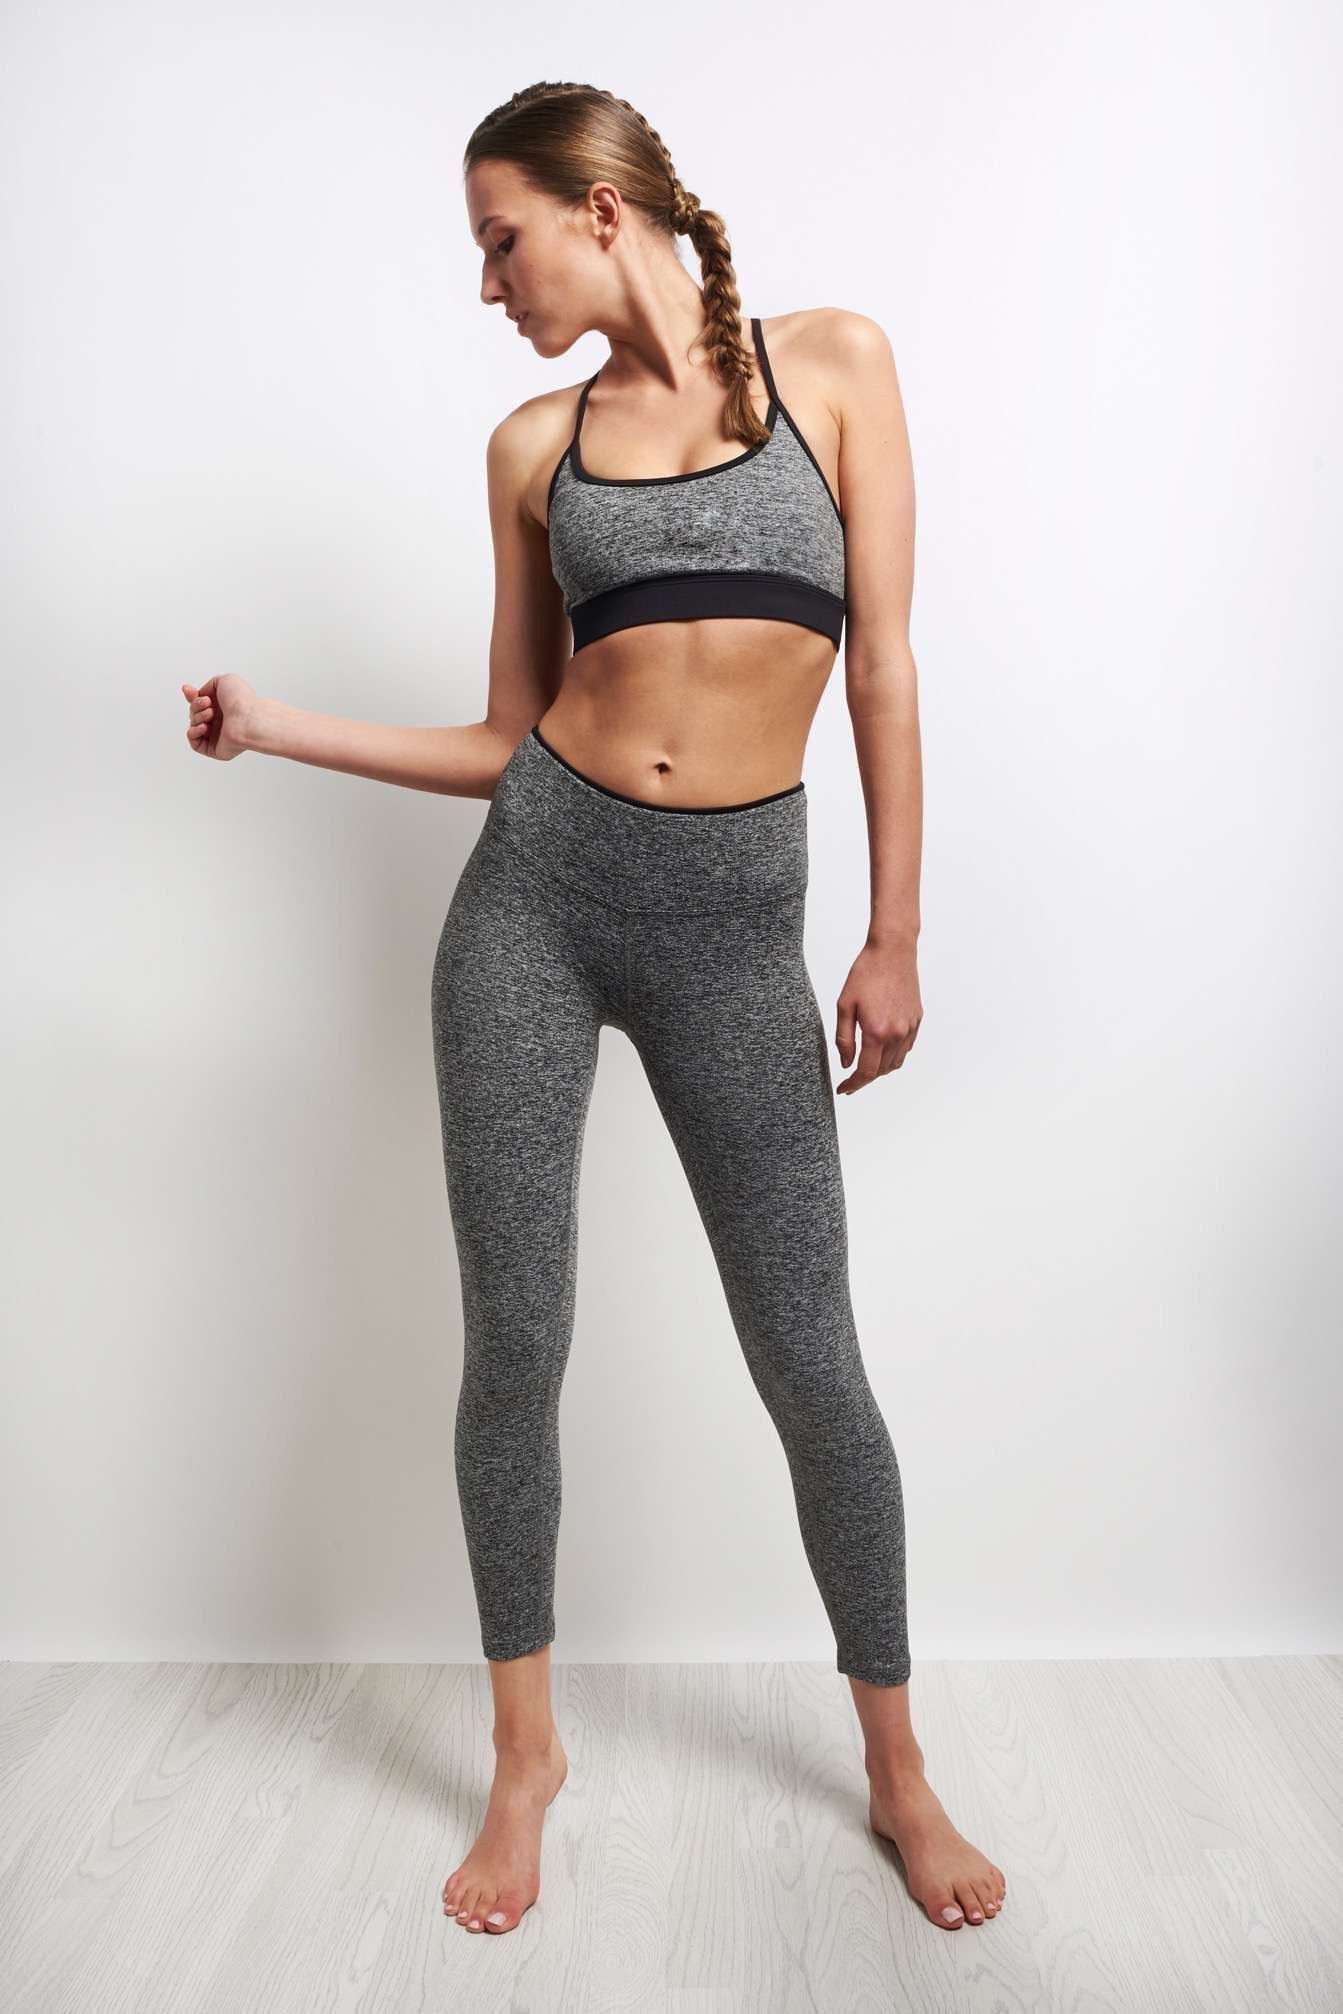 Koral Lucent Sports Bra - Heather Grey/Black image 4 - The Sports Edit